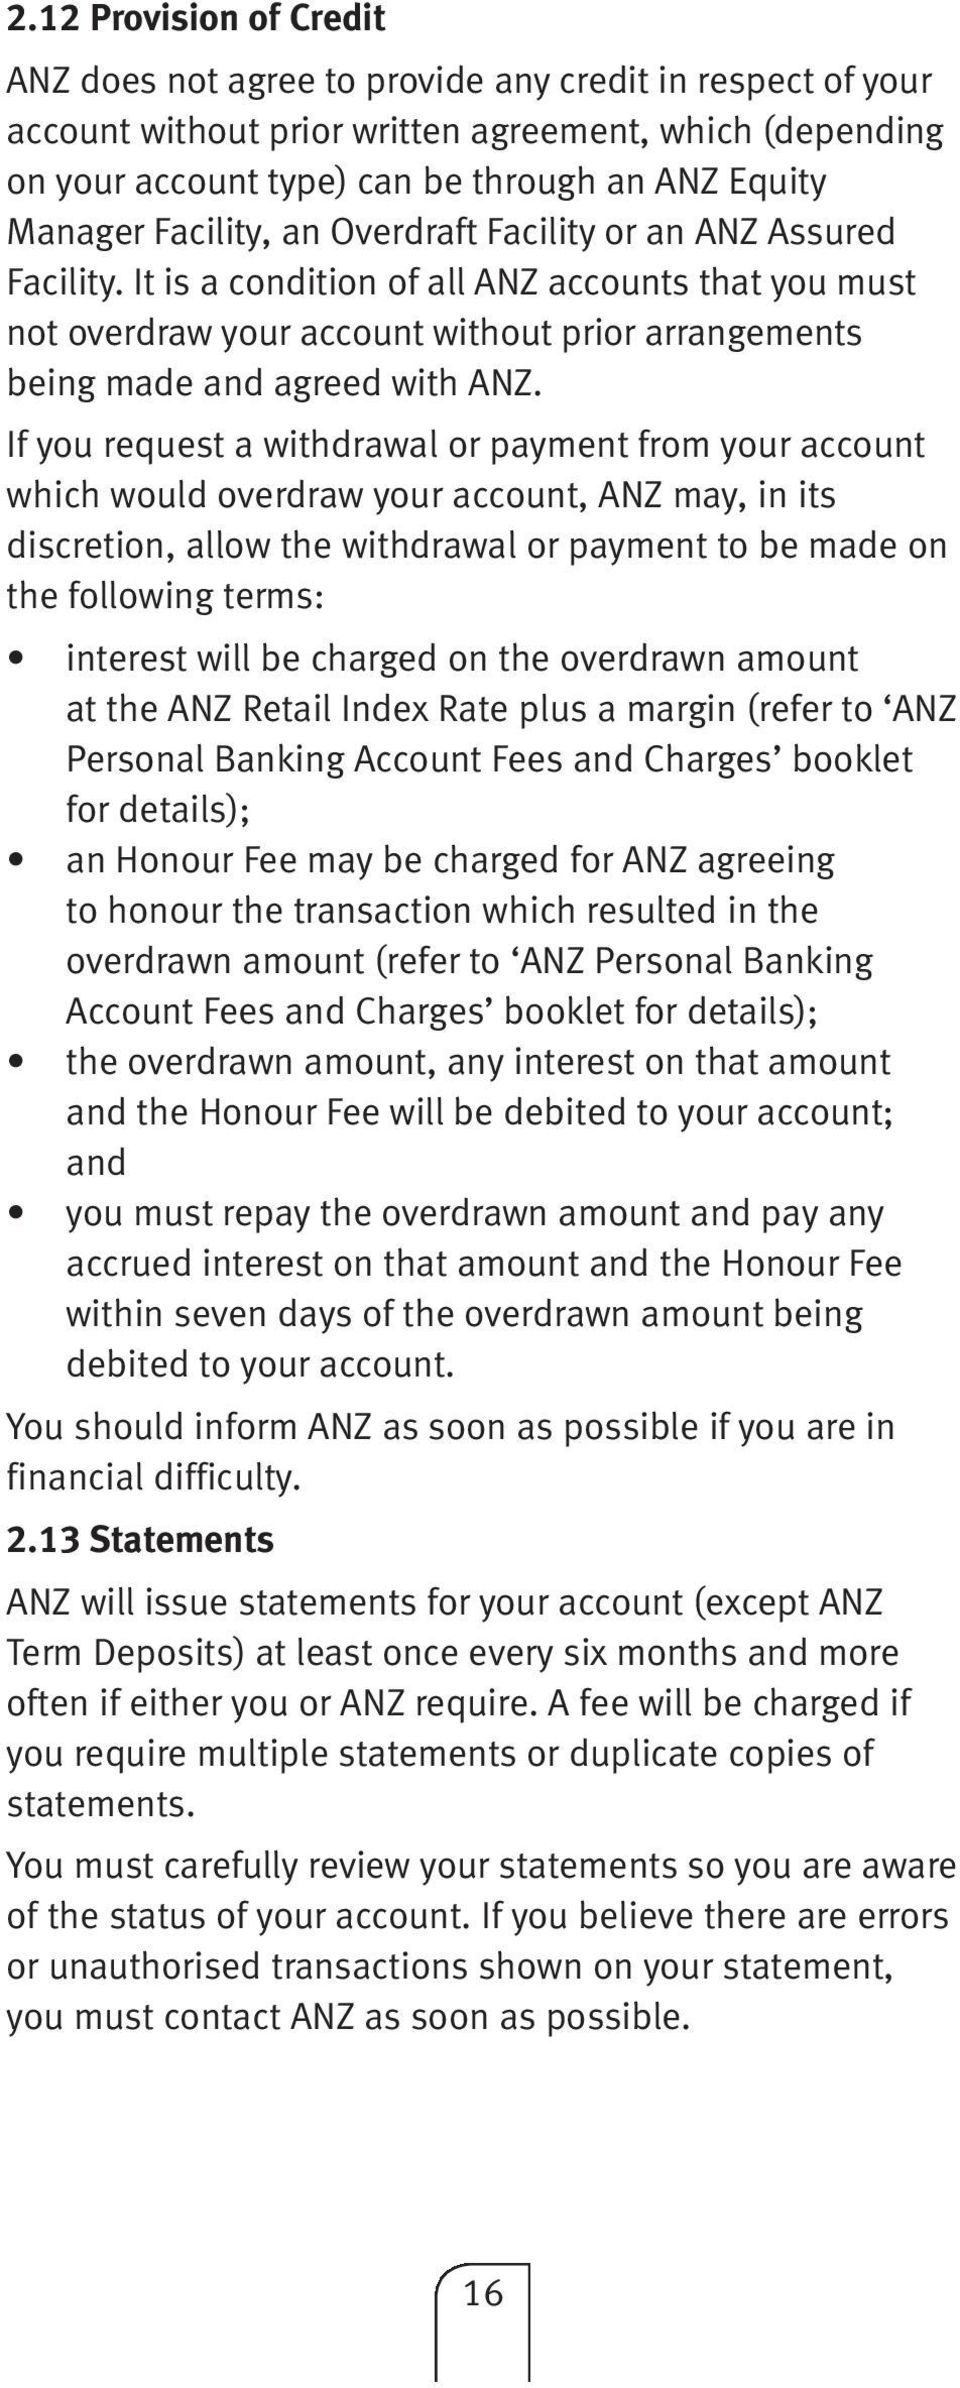 It is a condition of all ANZ accounts that you must not overdraw your account without prior arrangements being made and agreed with ANZ.